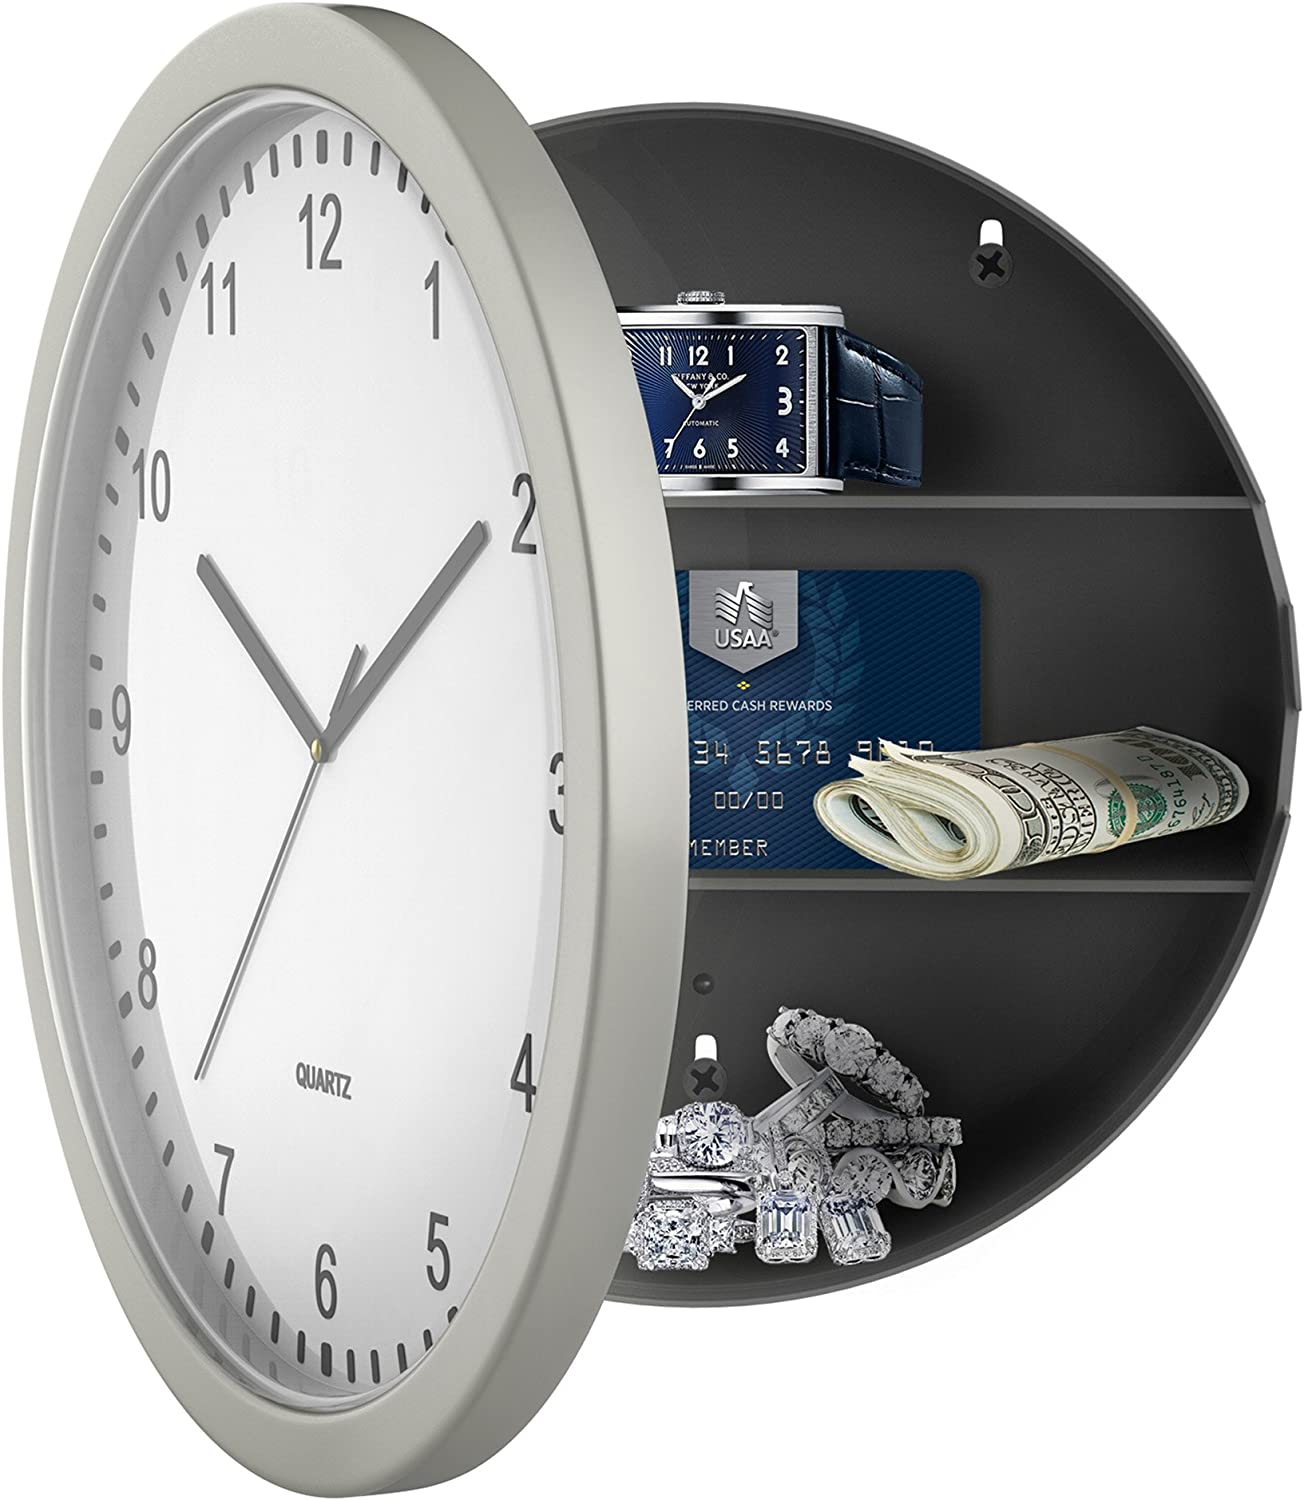 Trademark Gambler's Wall Clock Diversion Safe